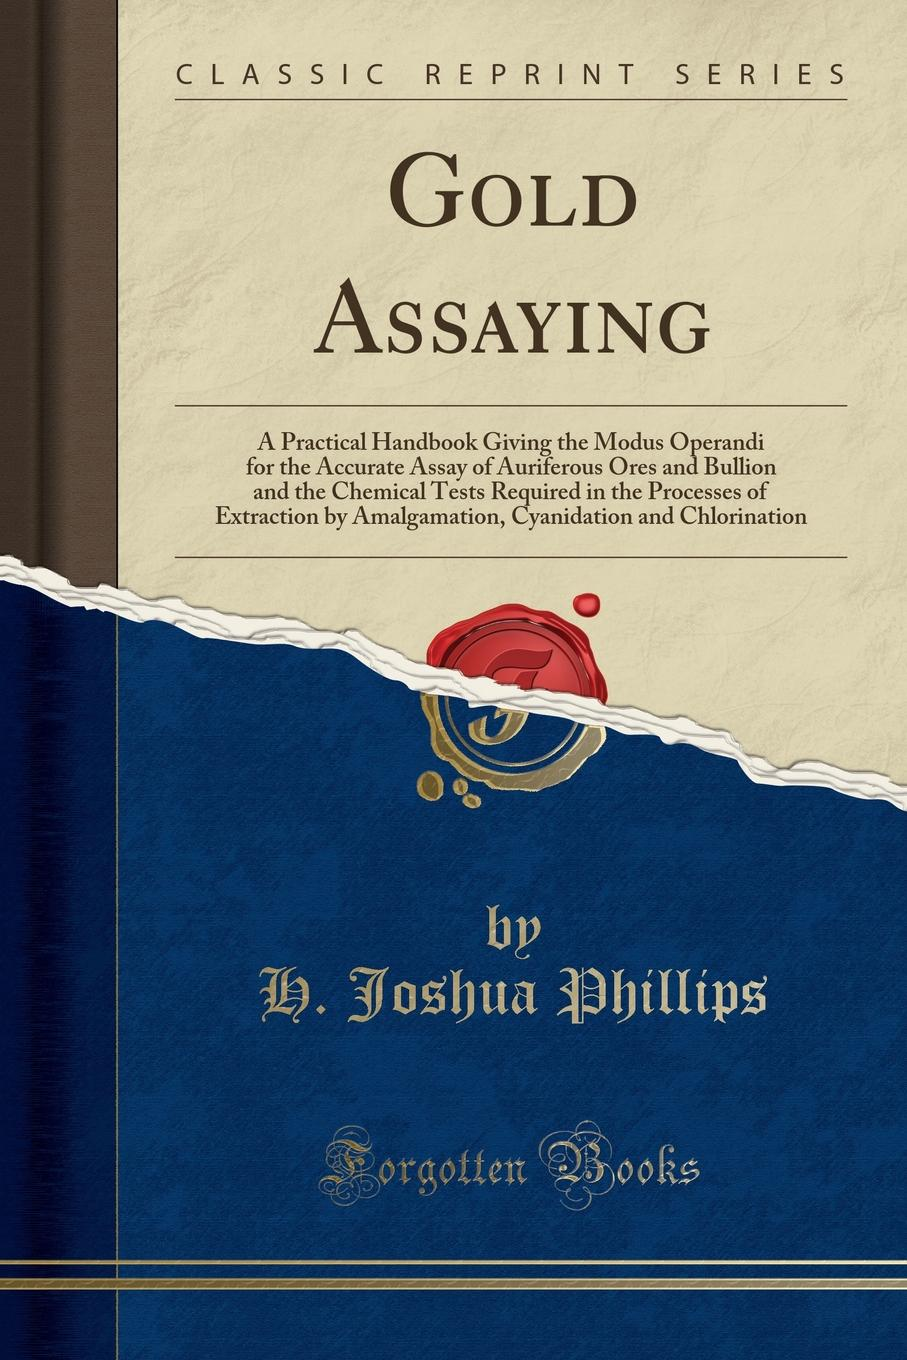 Gold Assaying : A Practical Handbook Giving the Modus Operandi for the Accurate Assay of Auriferous Ores and Bullion and... by